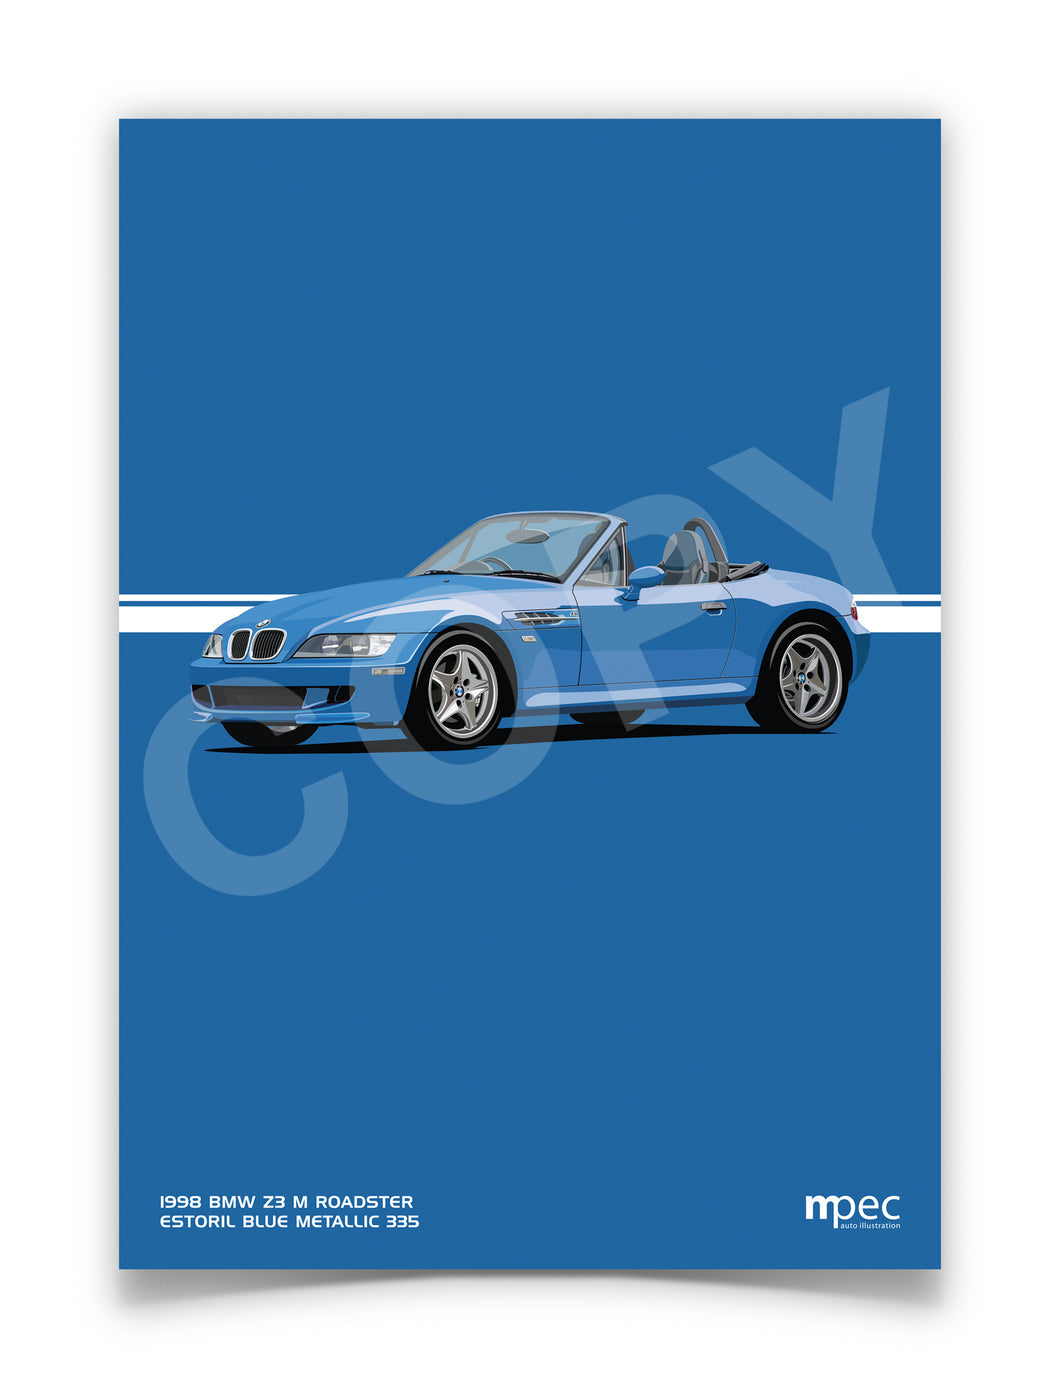 Print of 1998 BMW Z3 M Roadster in Estoril Blue Metallic 335